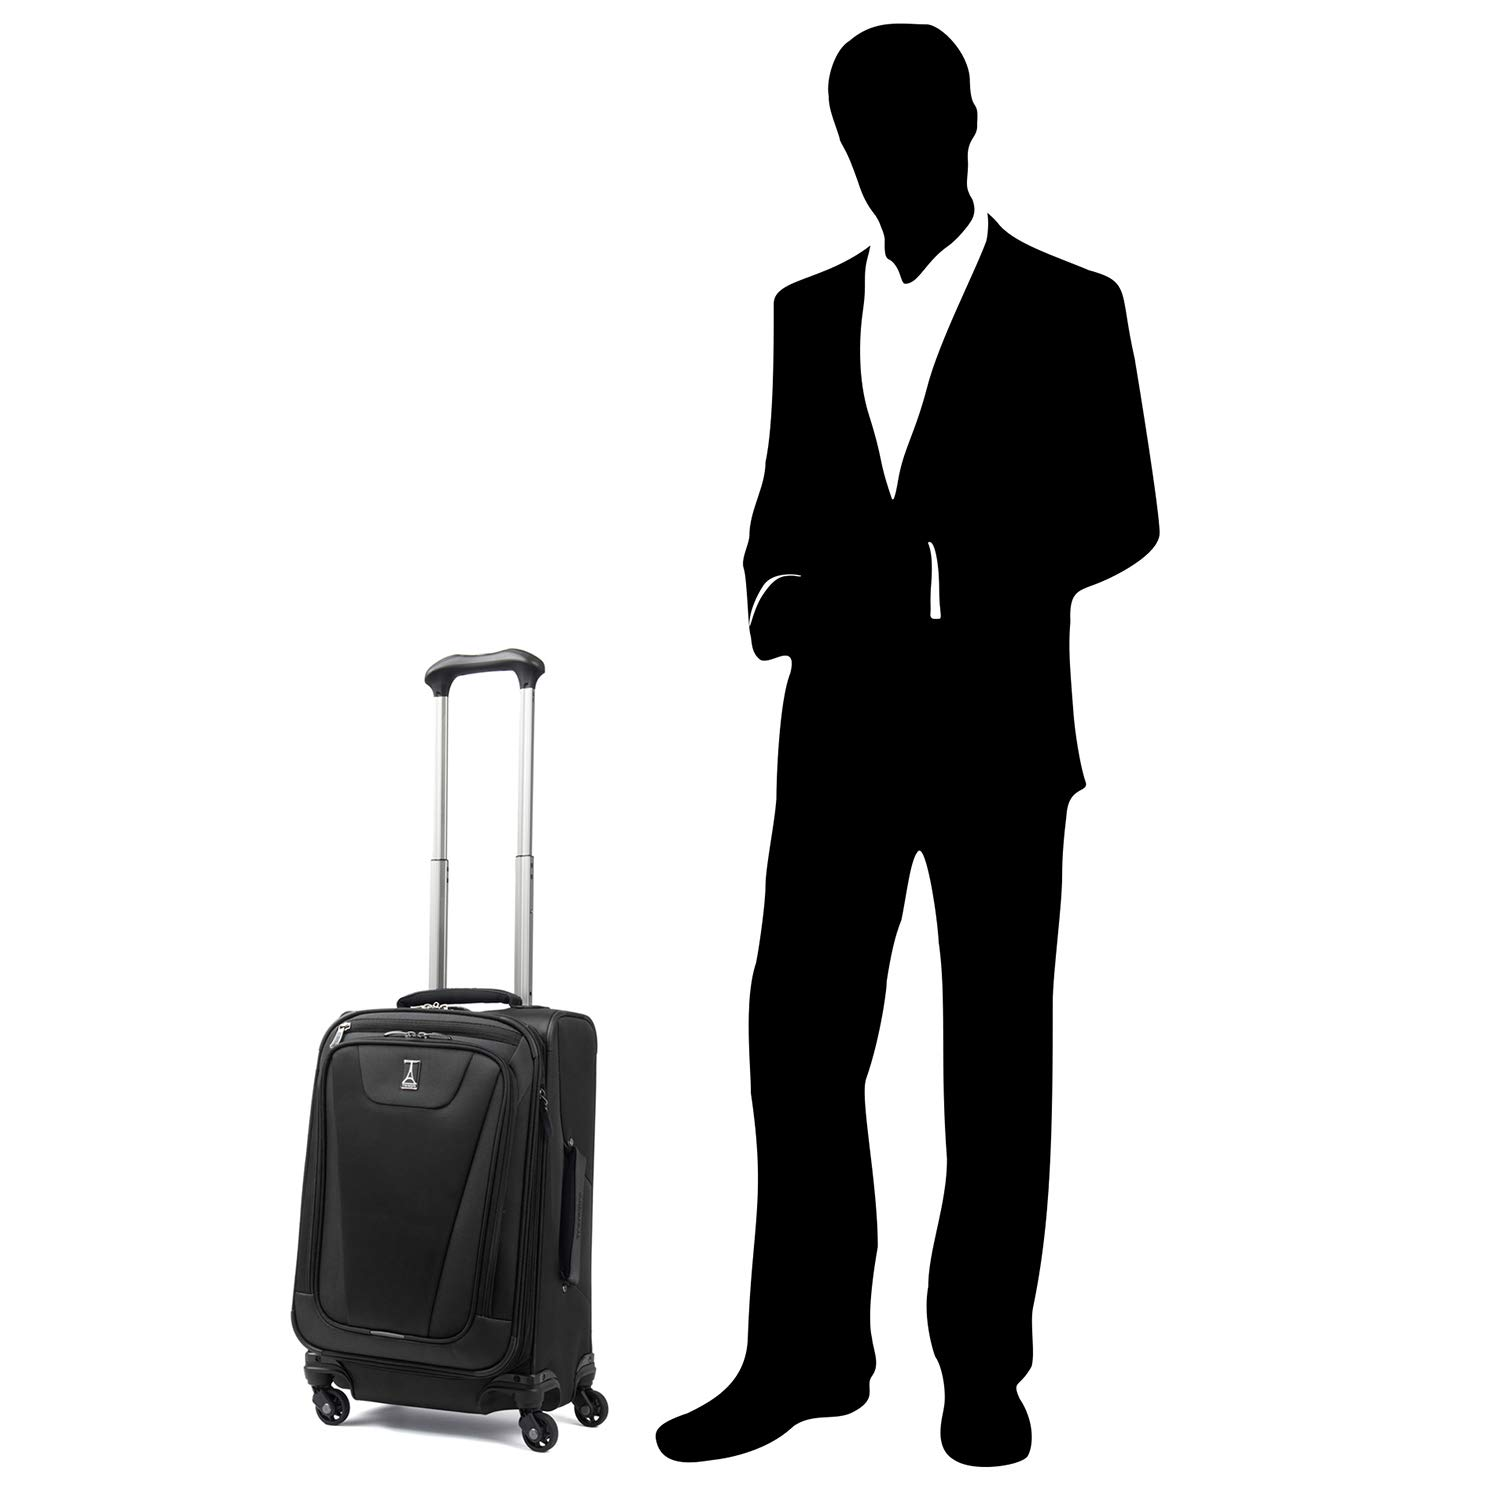 Travelpro Maxlite 4 Expandable 21 Inch Spinner Suitcase, Black by Travelpro (Image #6)